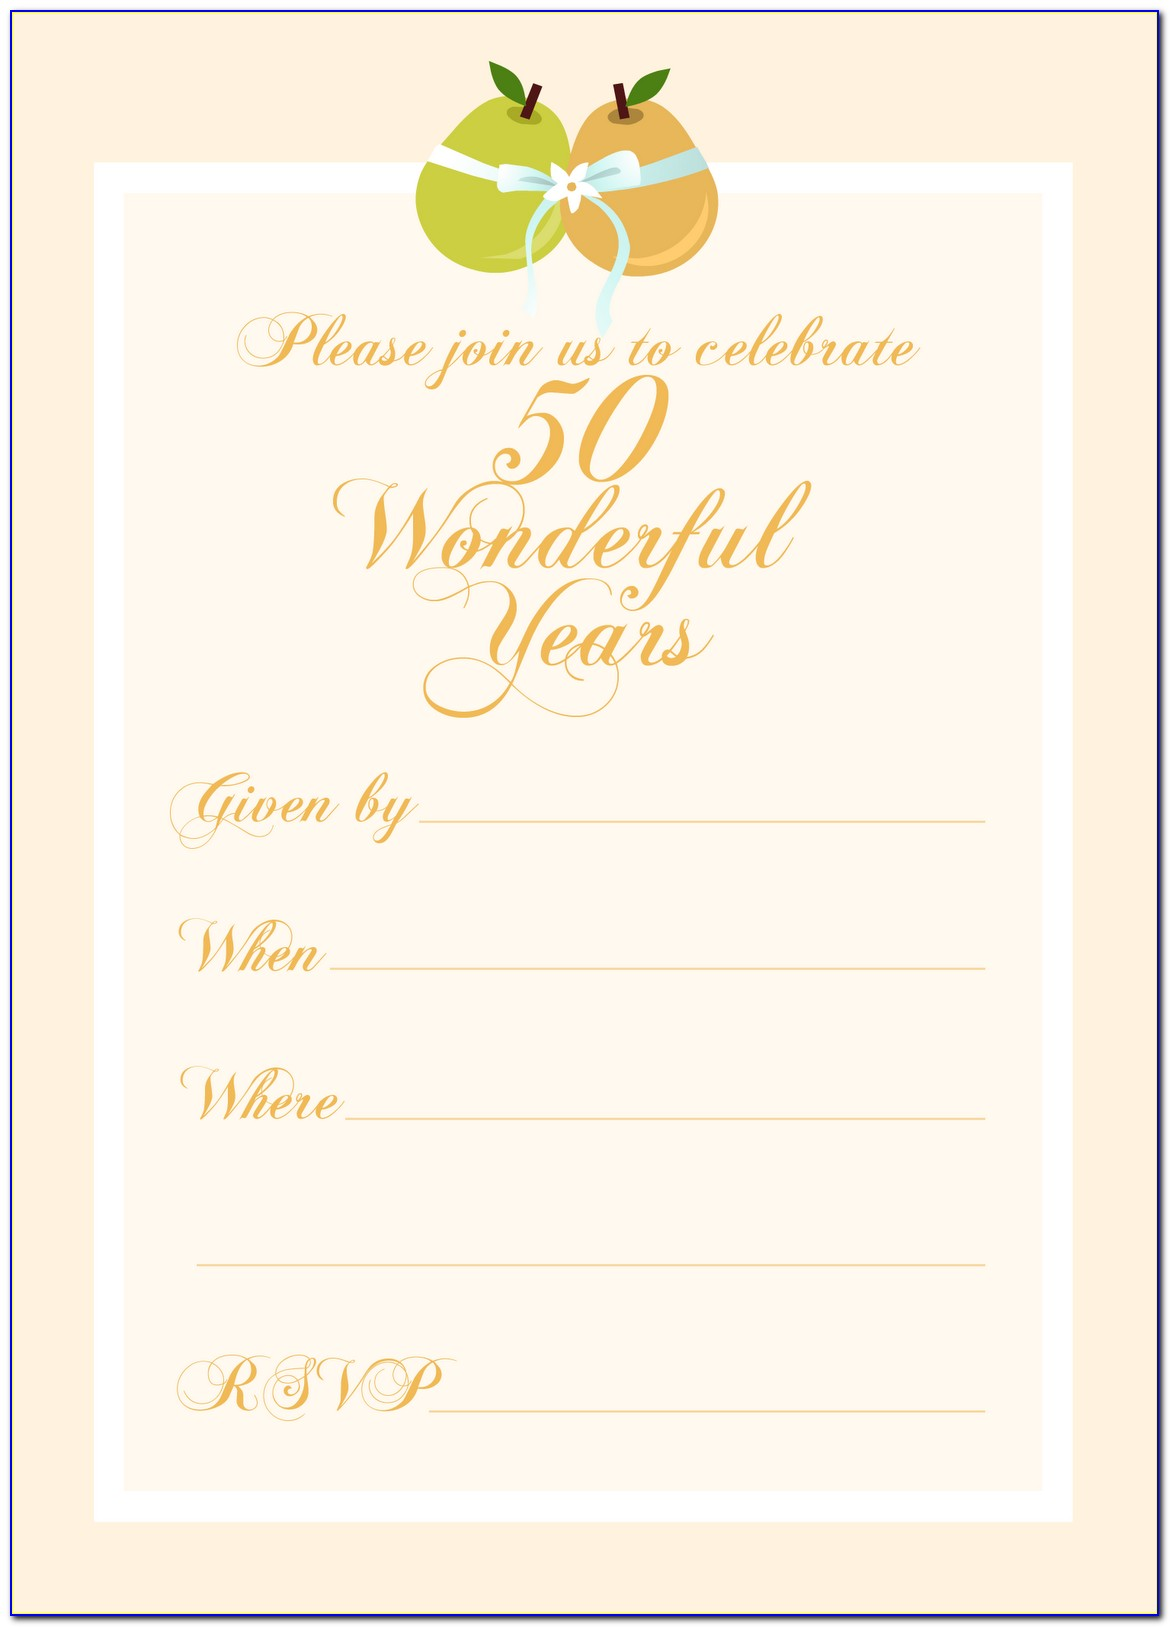 Free Wedding Anniversary Invitation Templates Download